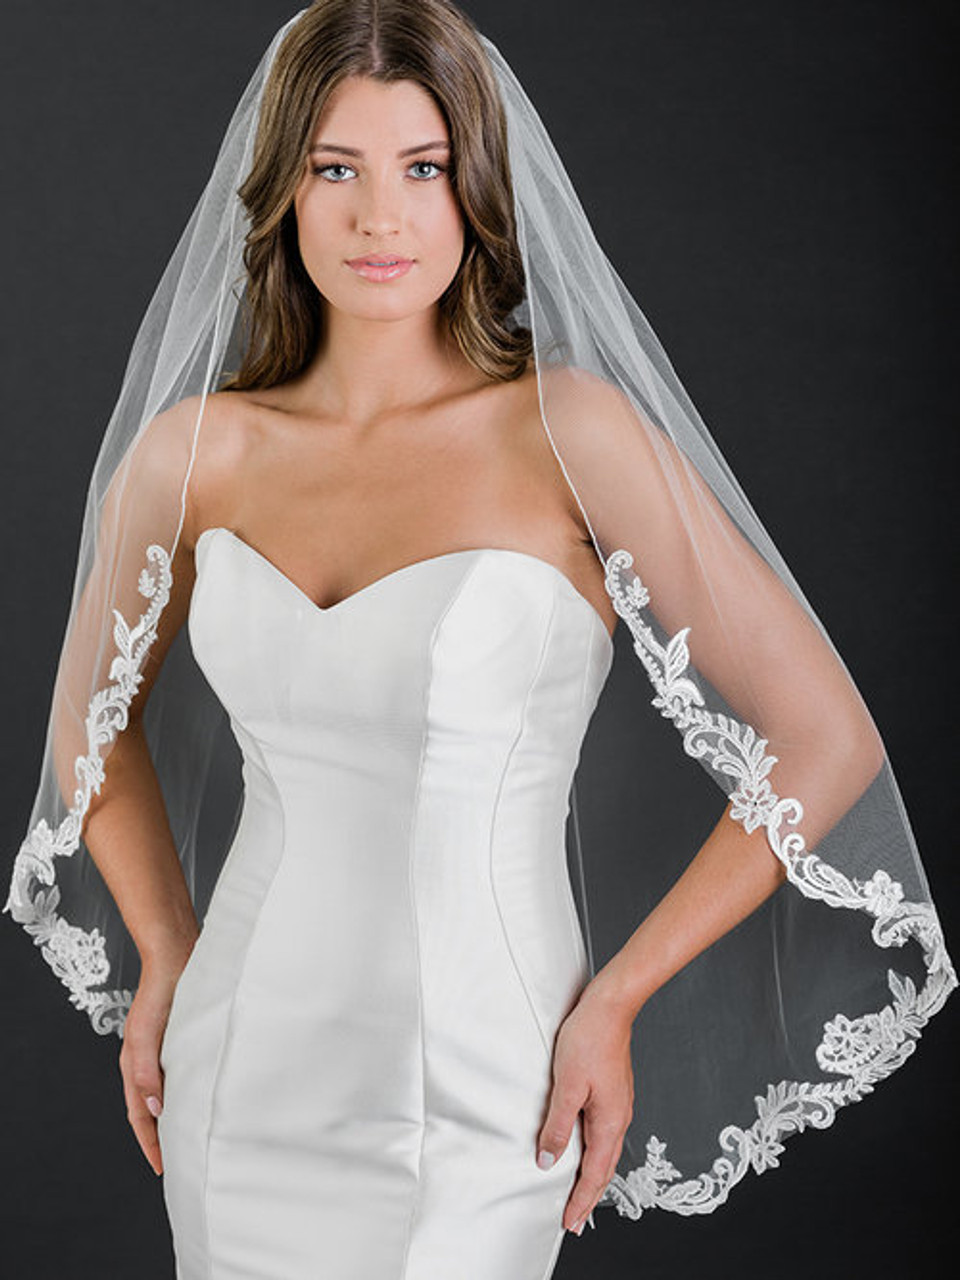 Bel Aire Bridal Veil V7500 - 1-tier fingertip rolled edge veil with scroll and floral lace